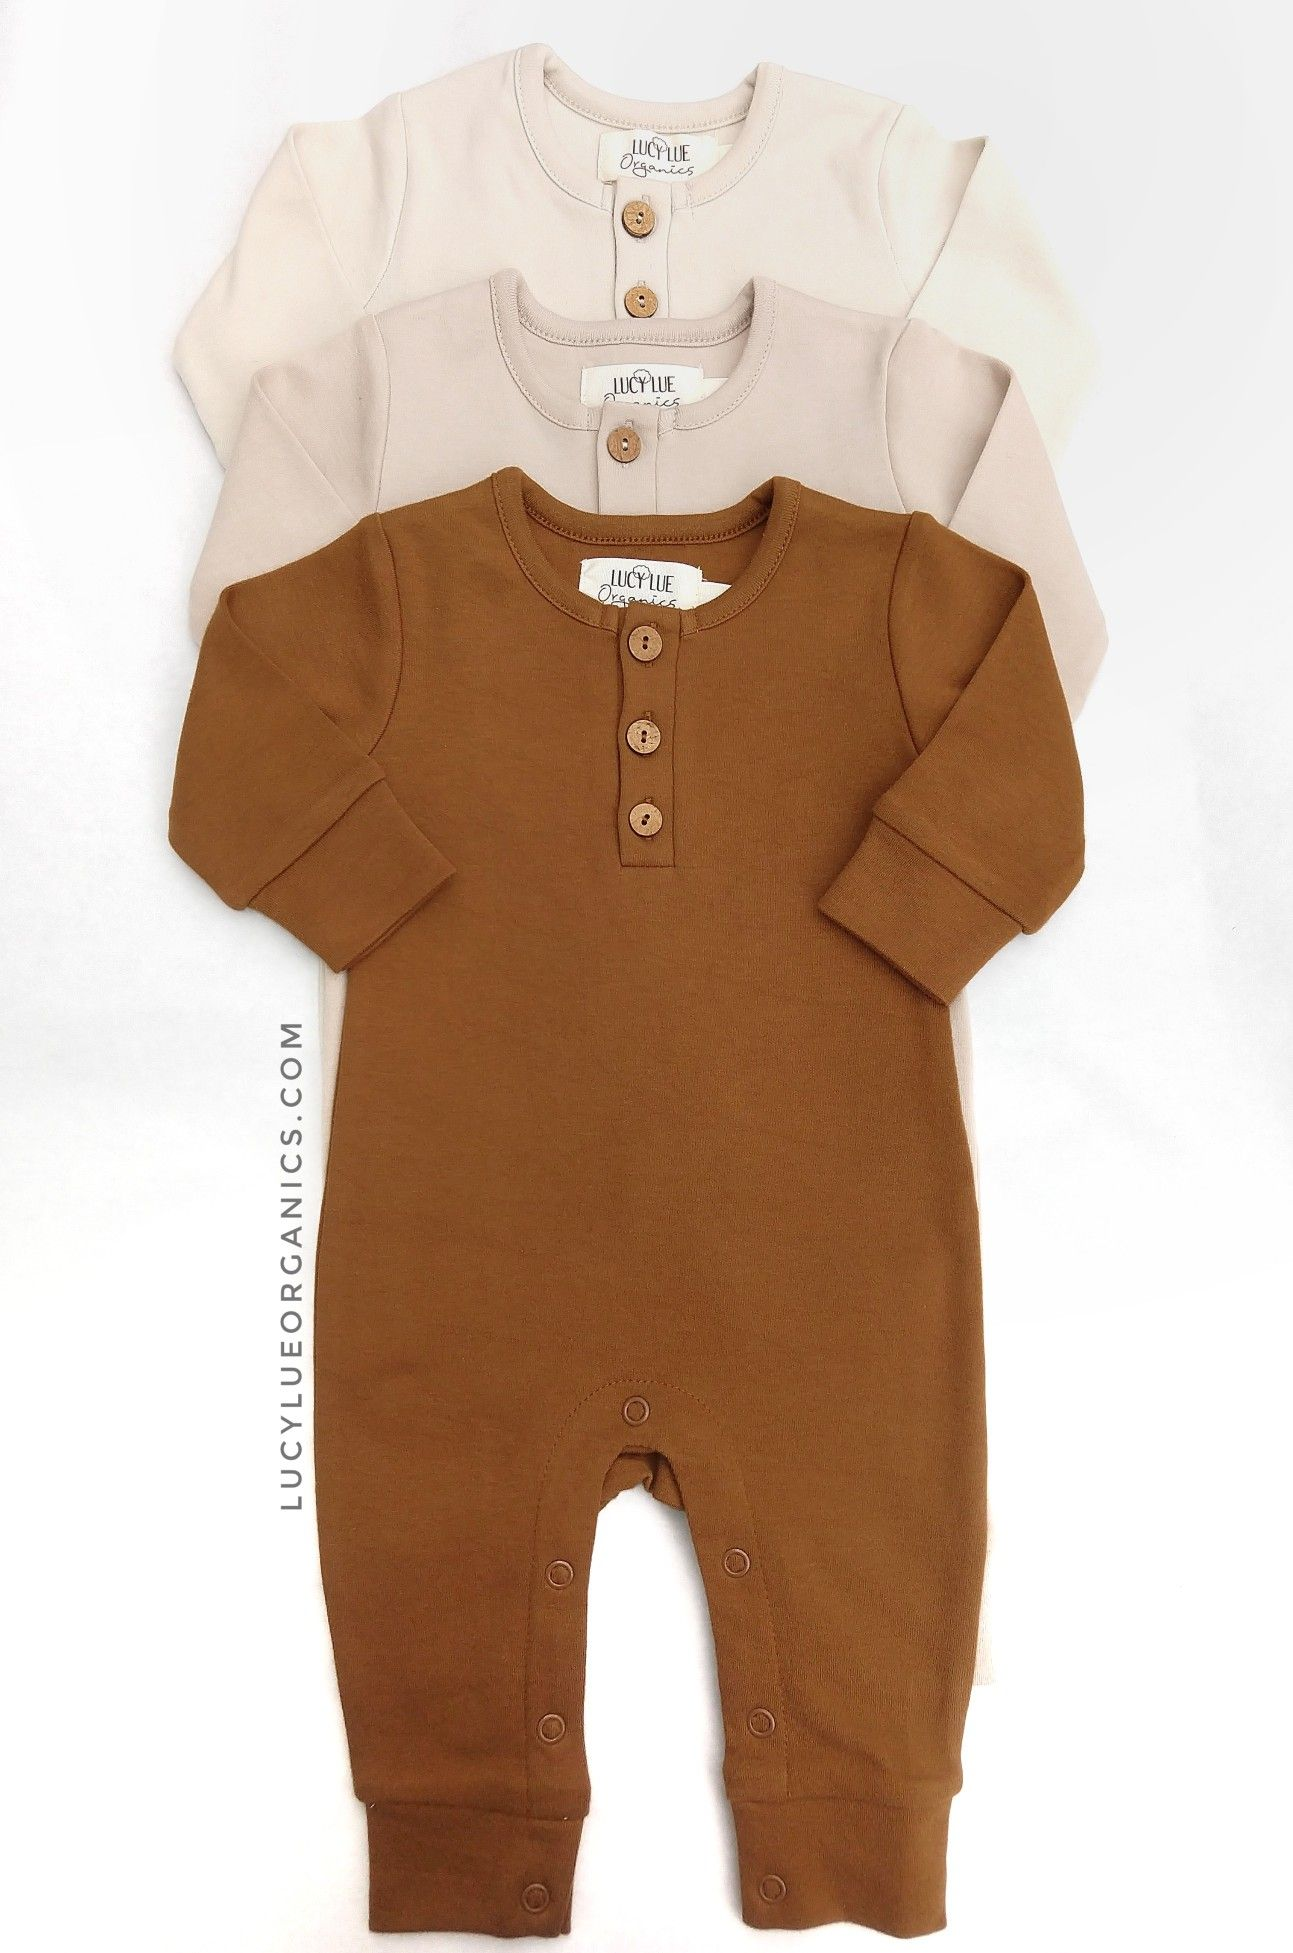 Neutrals Organic Cotton Rompers Trendy Baby Clothes Baby Outfits Newborn Modern Baby Clothes Boy